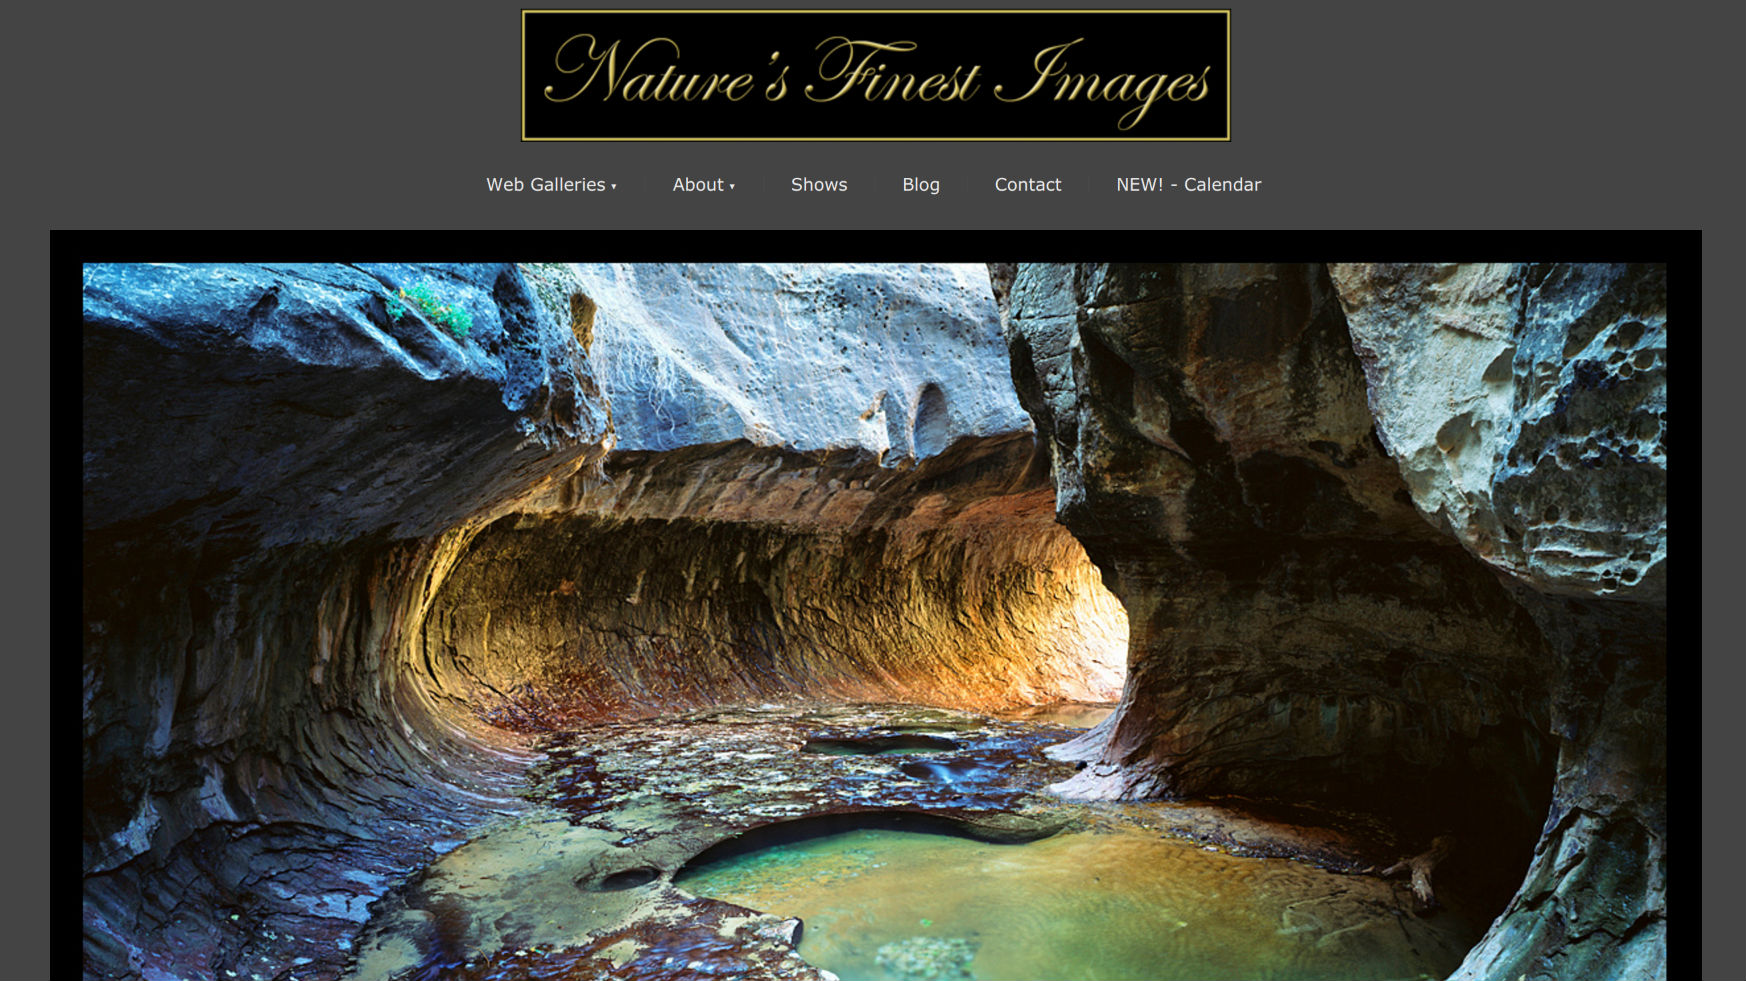 Nature's Finest Images